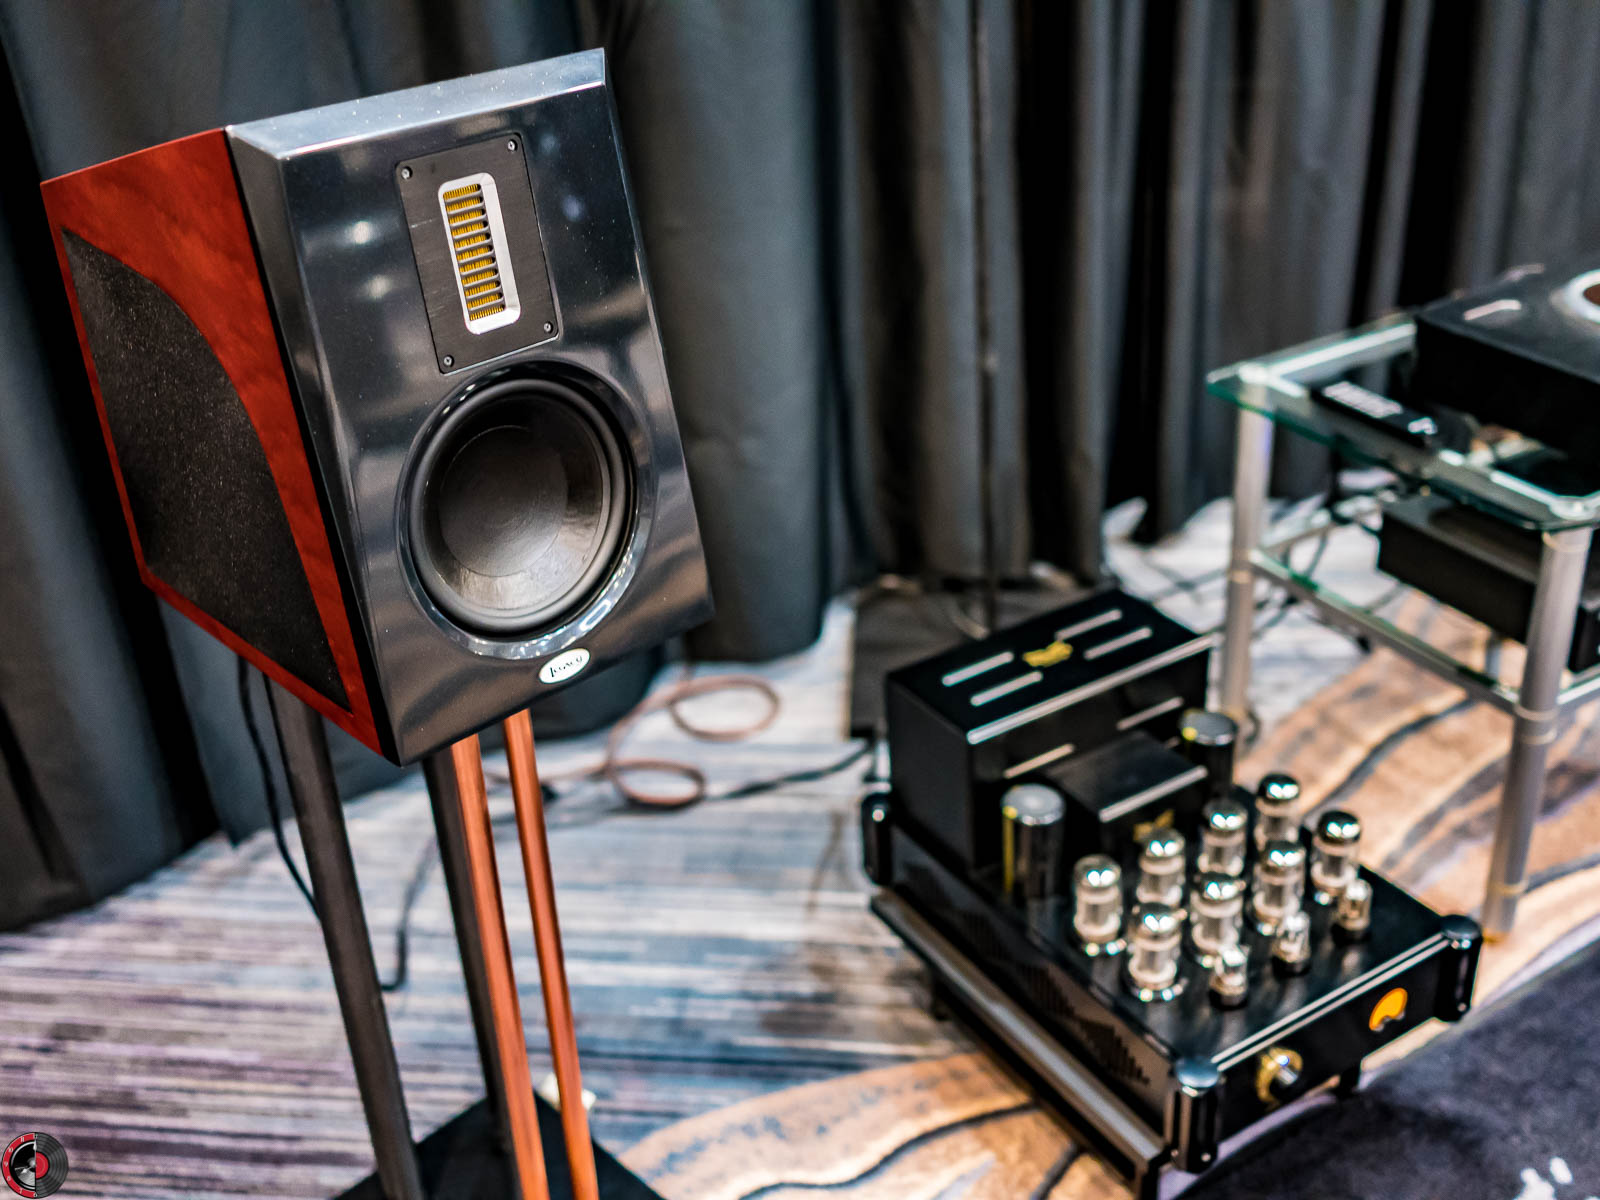 Rmaf 2016 Legacy Pulls Trigger On New Calibre Monitor Part Time 12 Inch Subwoofer Raven 02760 2